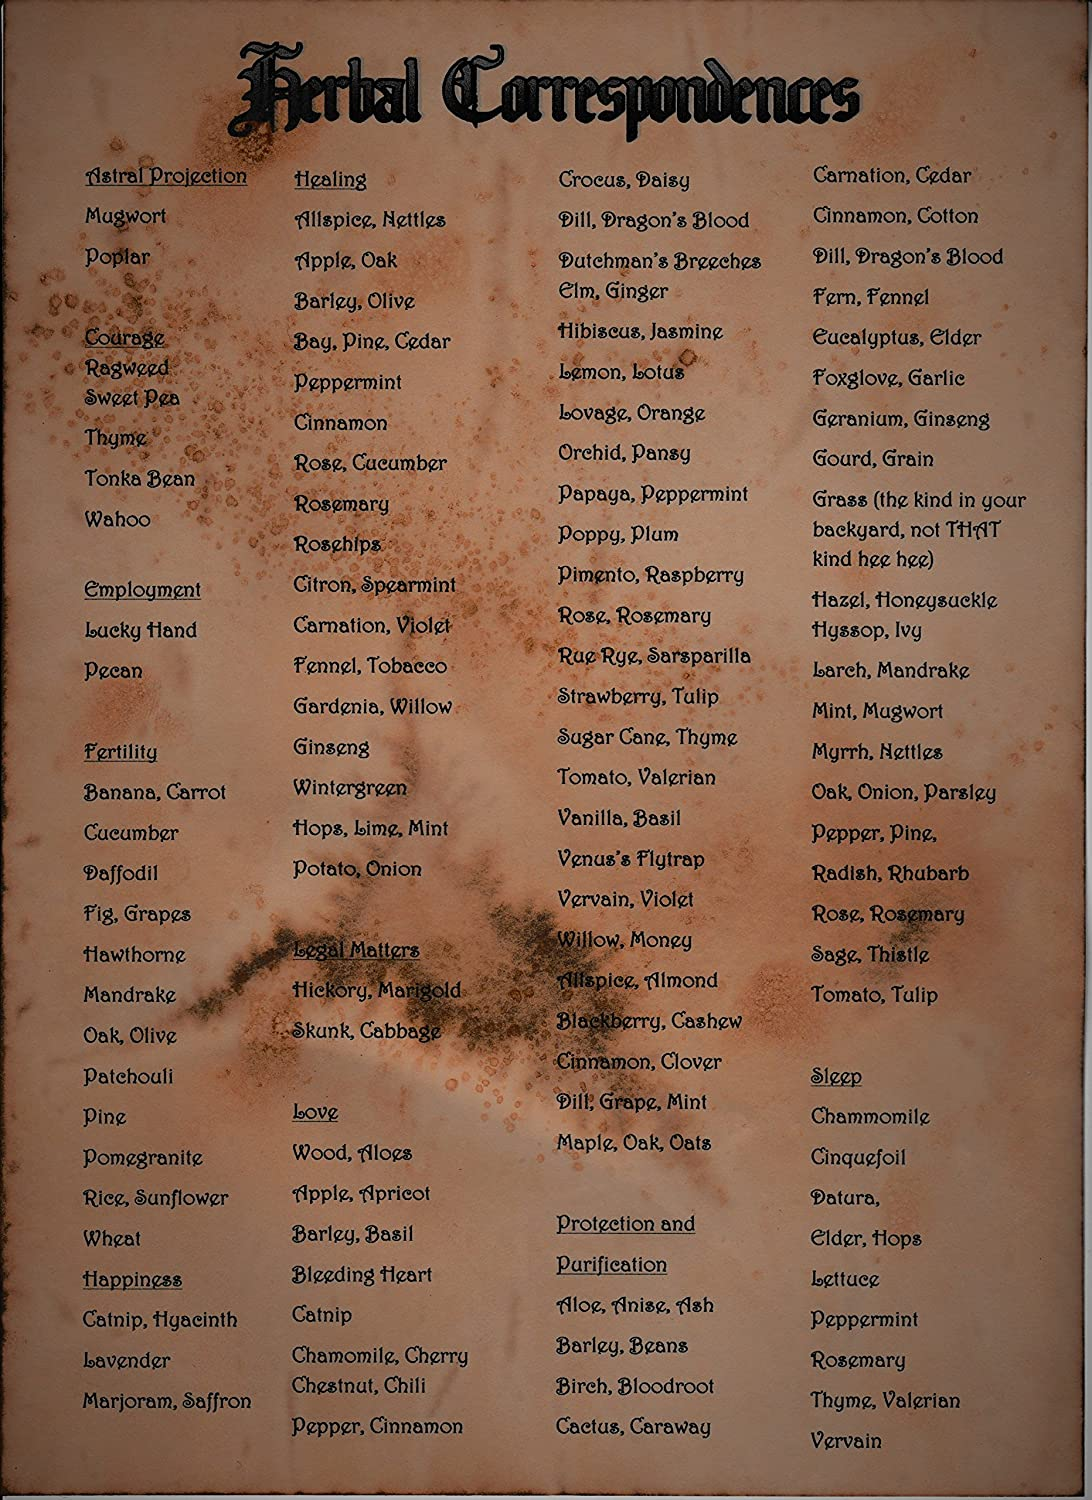 HERB CORRESPONDENCES WITCHCRAFT WICCA PAGAN Spell WITCHES